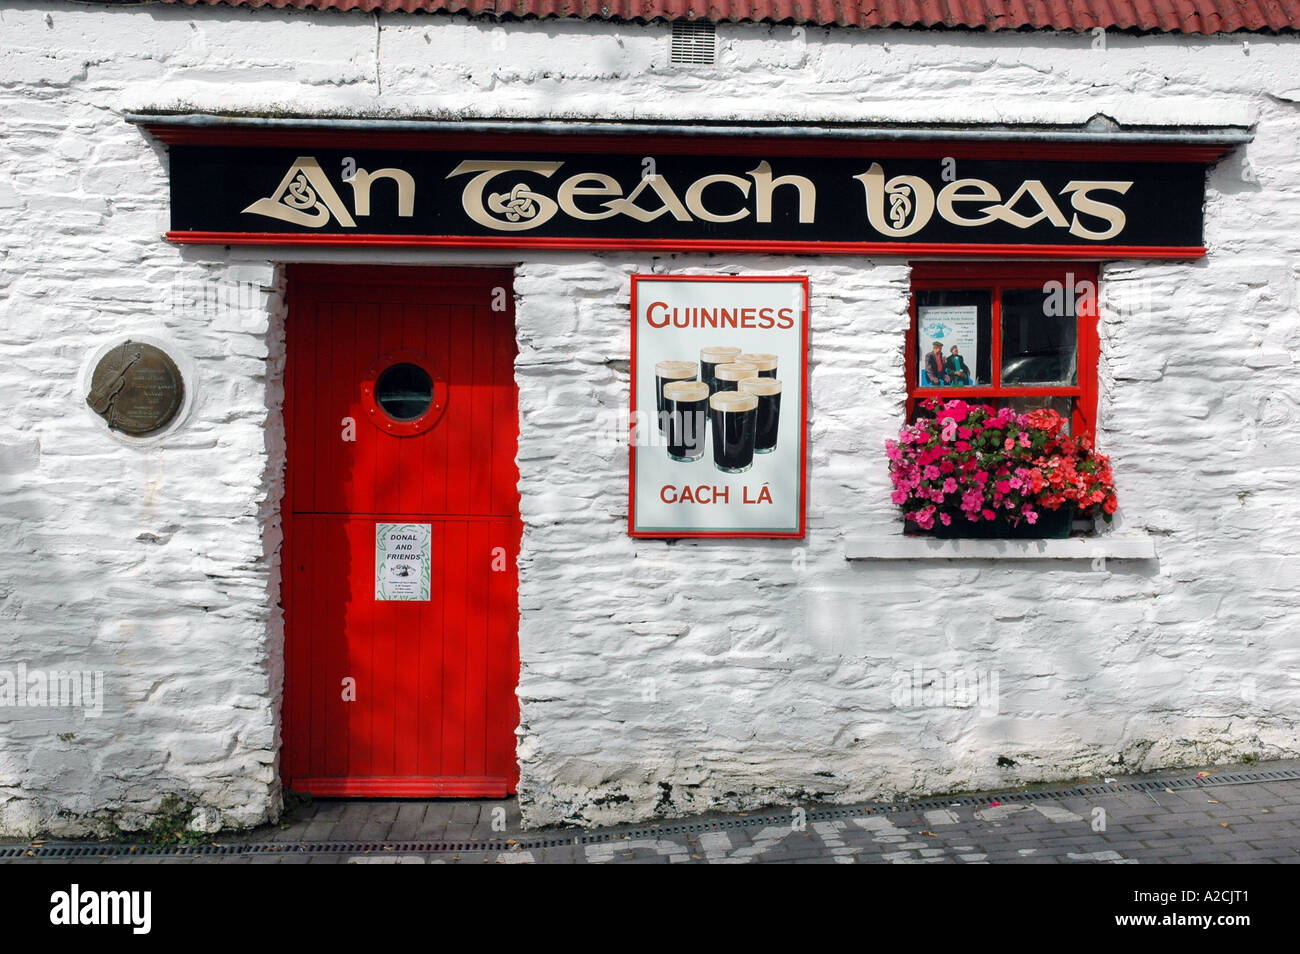 A Tiny Pub at Clonakilty Co Cork Ireland. The name over the door translates (The Little House) - Stock Image